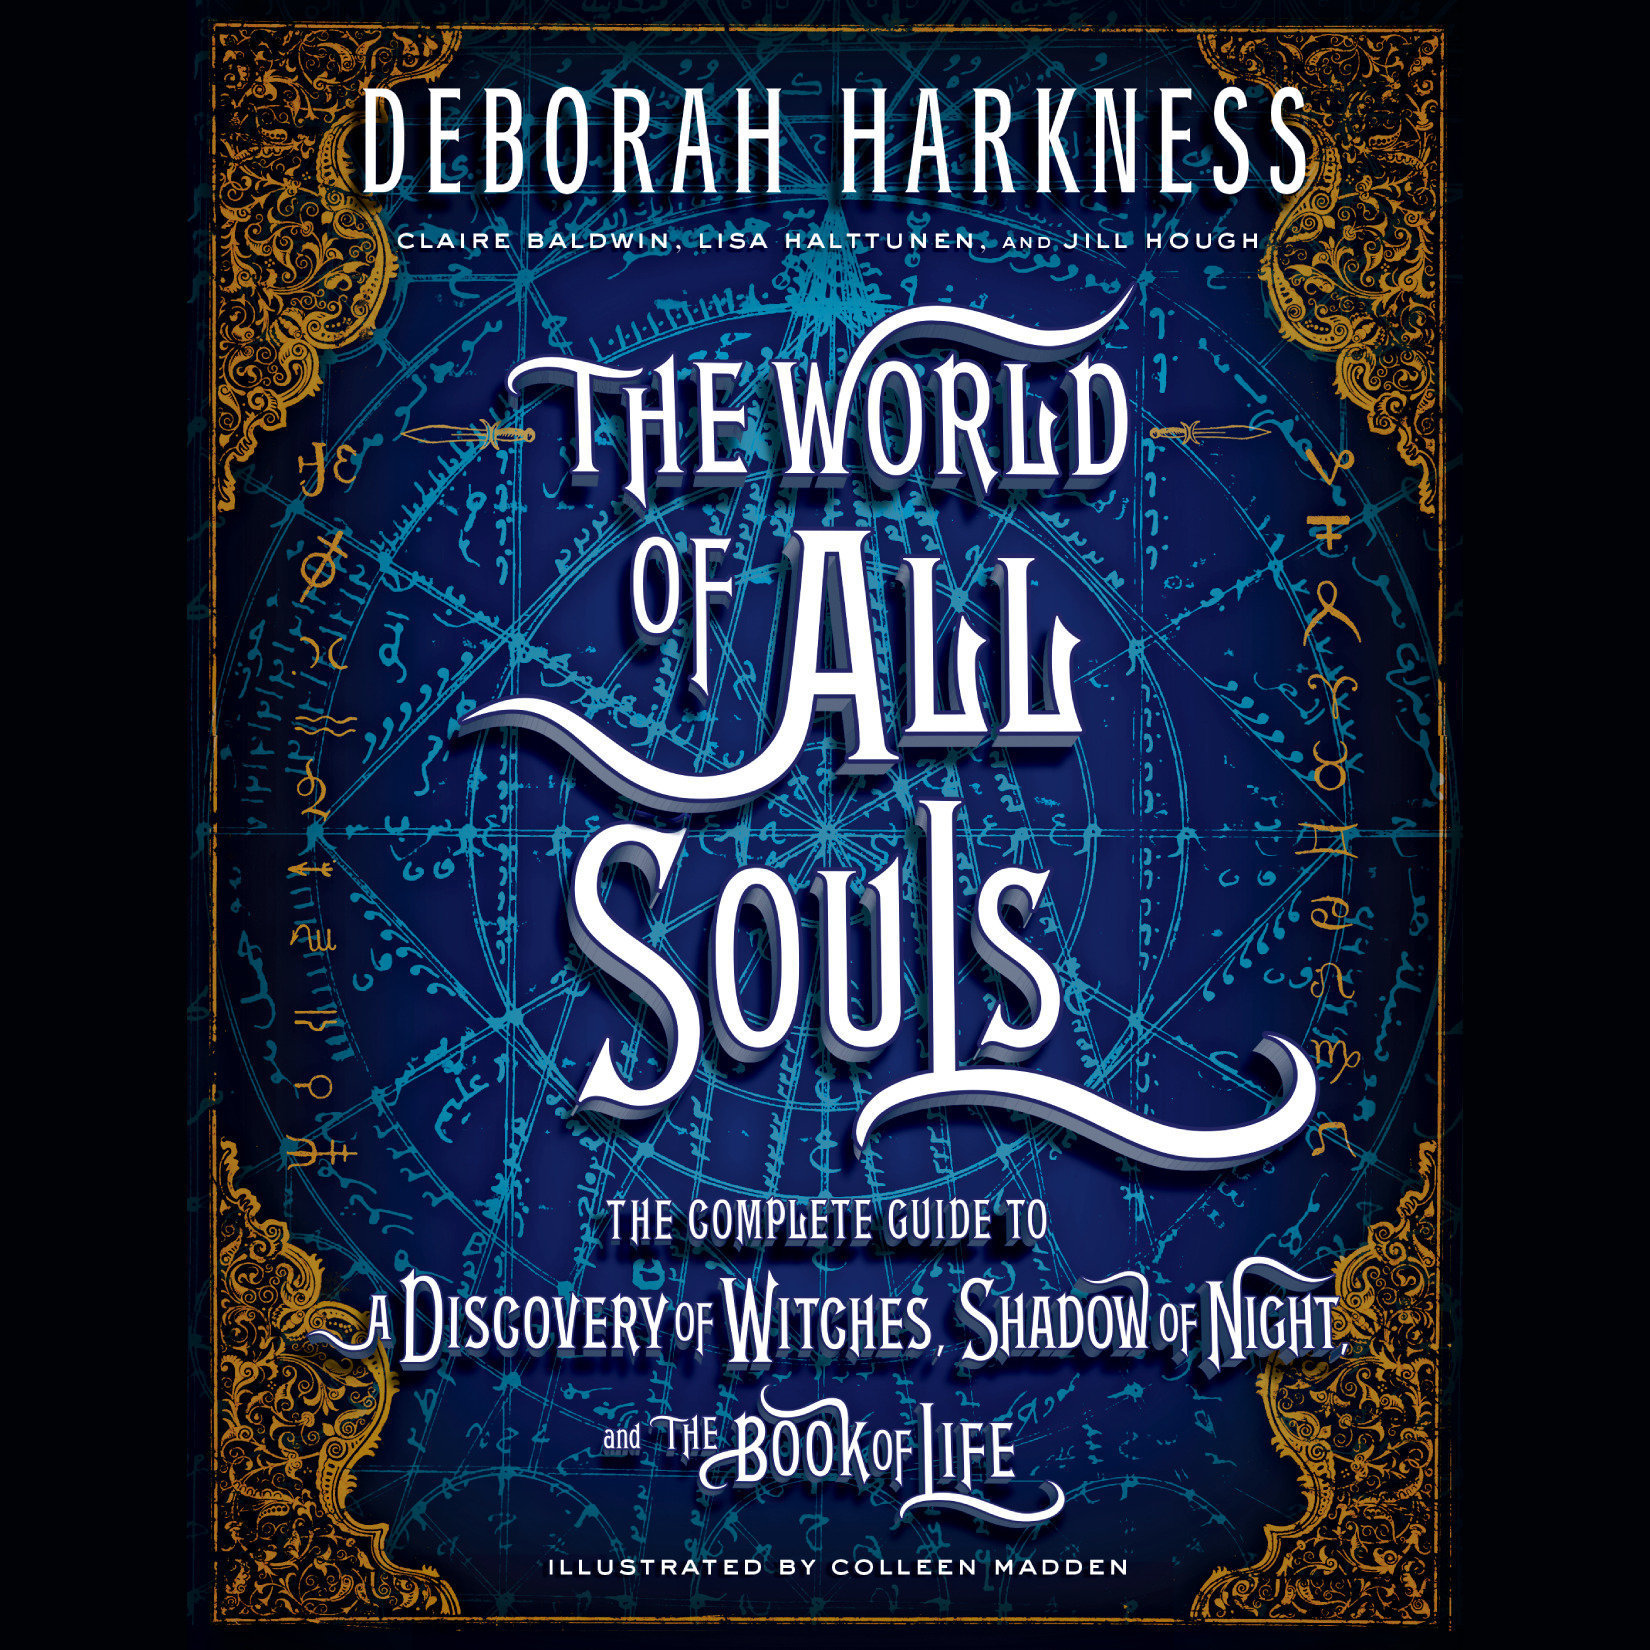 Printable The World of All Souls: The Complete Guide to A Discovery of Witches, Shadow of Night, and The Book of Life Audiobook Cover Art